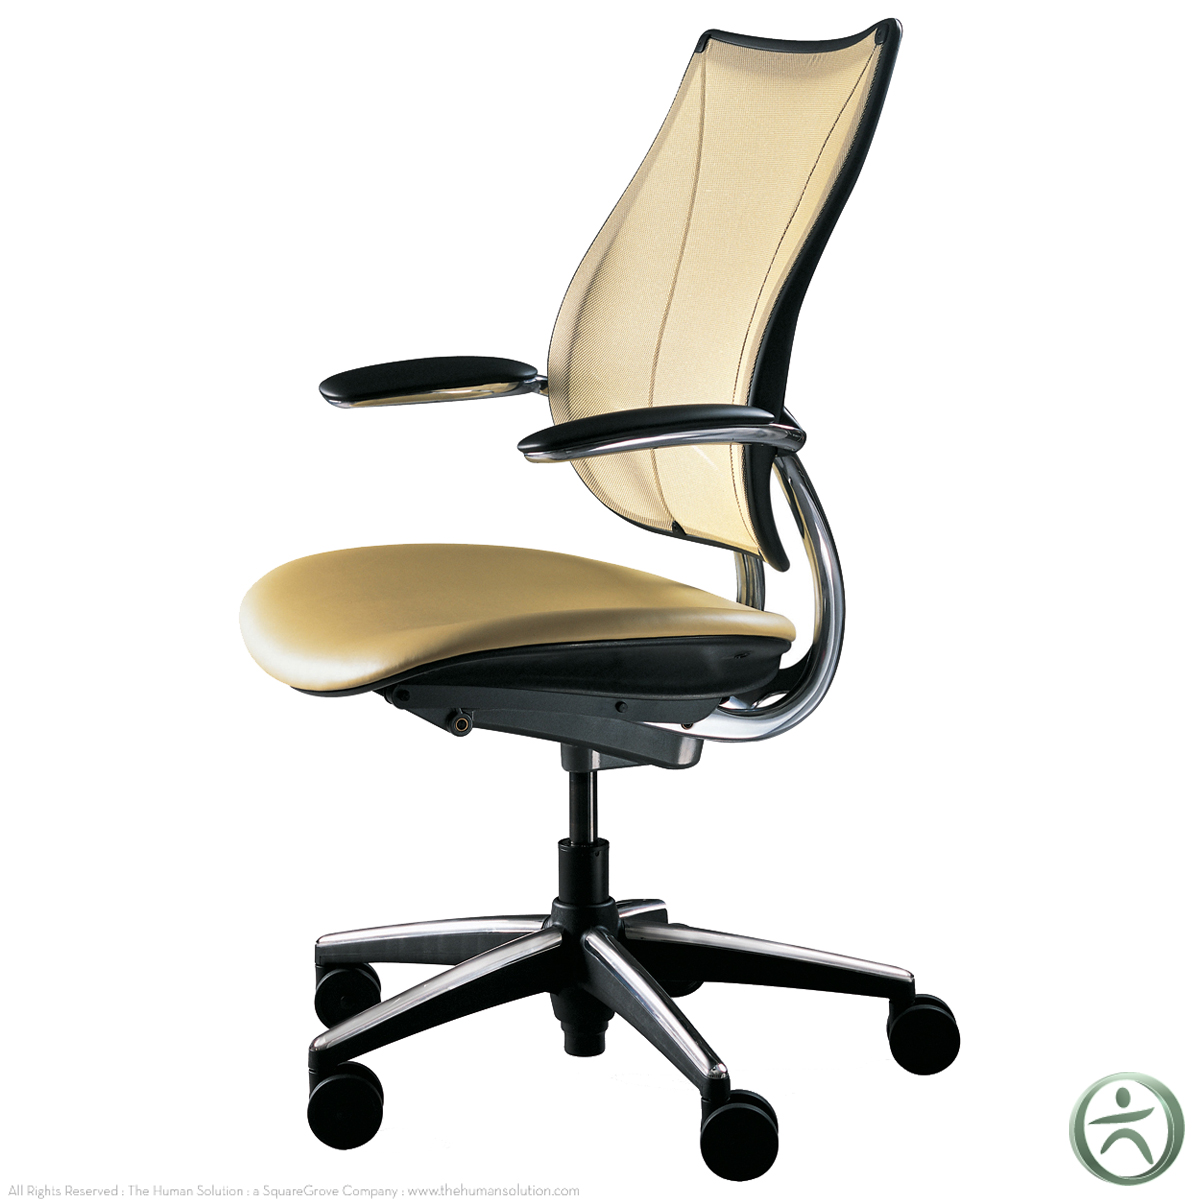 Human Scale Chair Shop Humanscale Liberty Chairs With Leather Seat